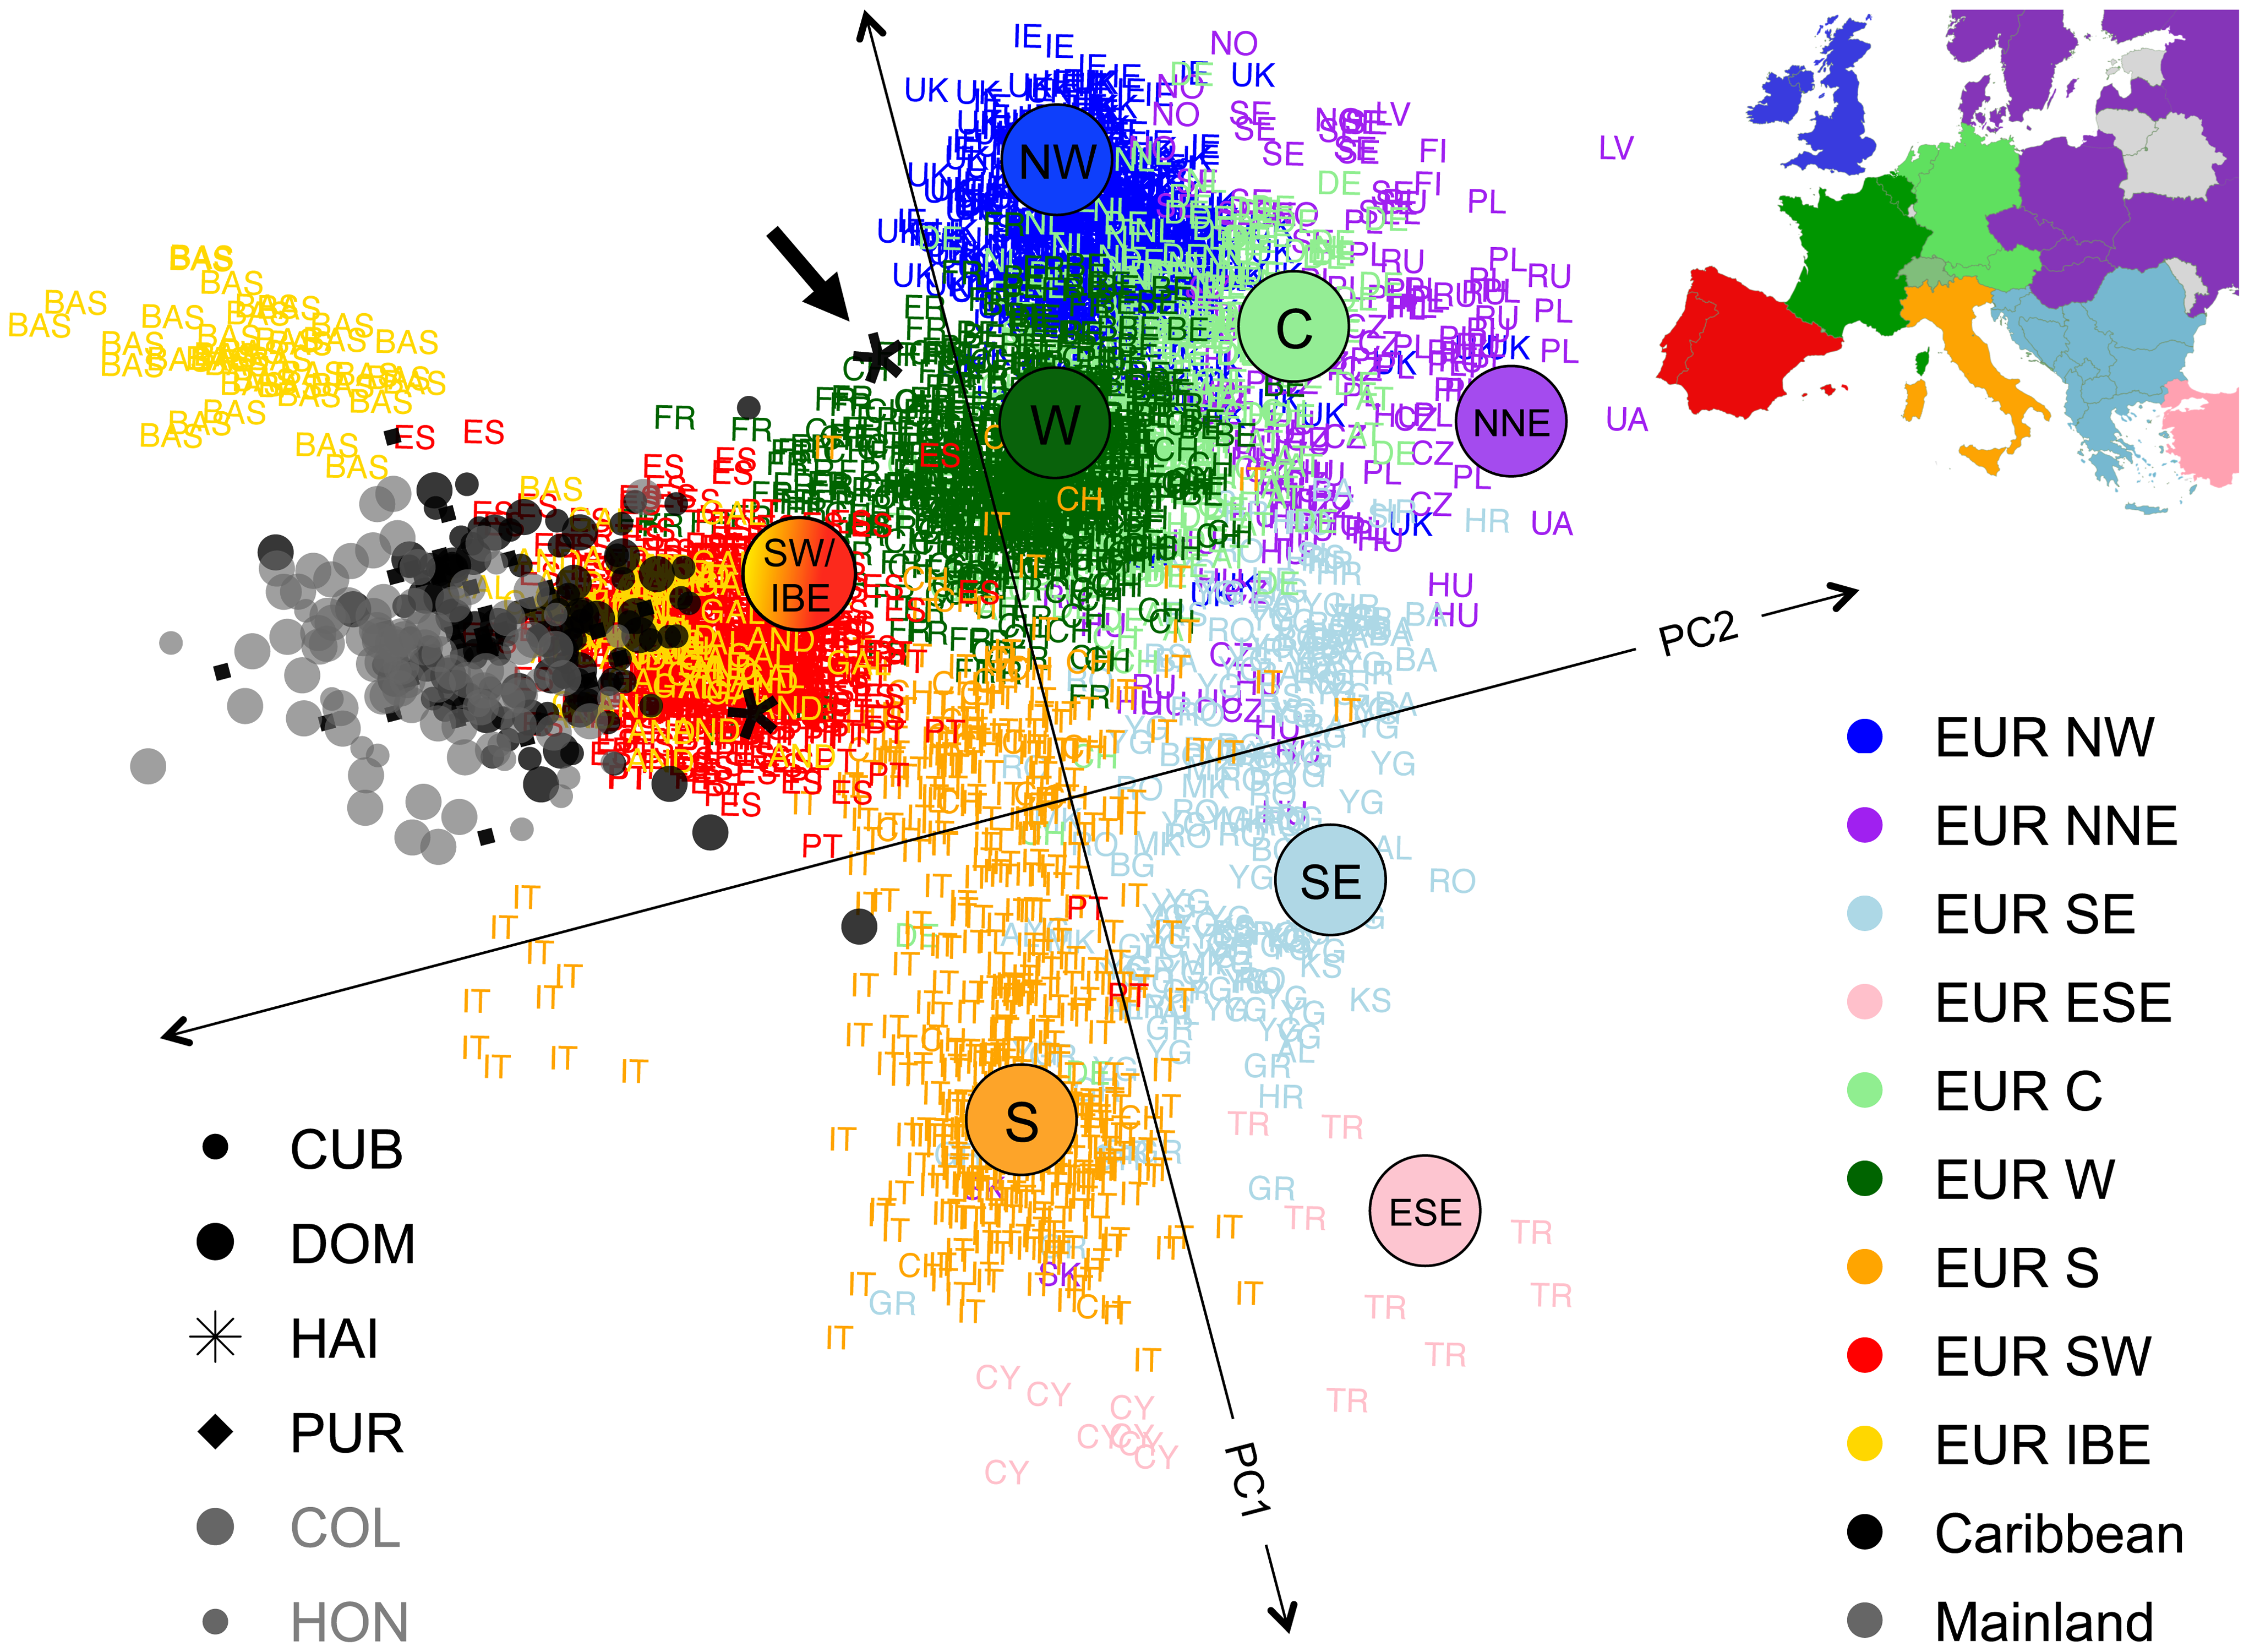 Sub-continental origin of European haplotypes derived from admixed genomes.